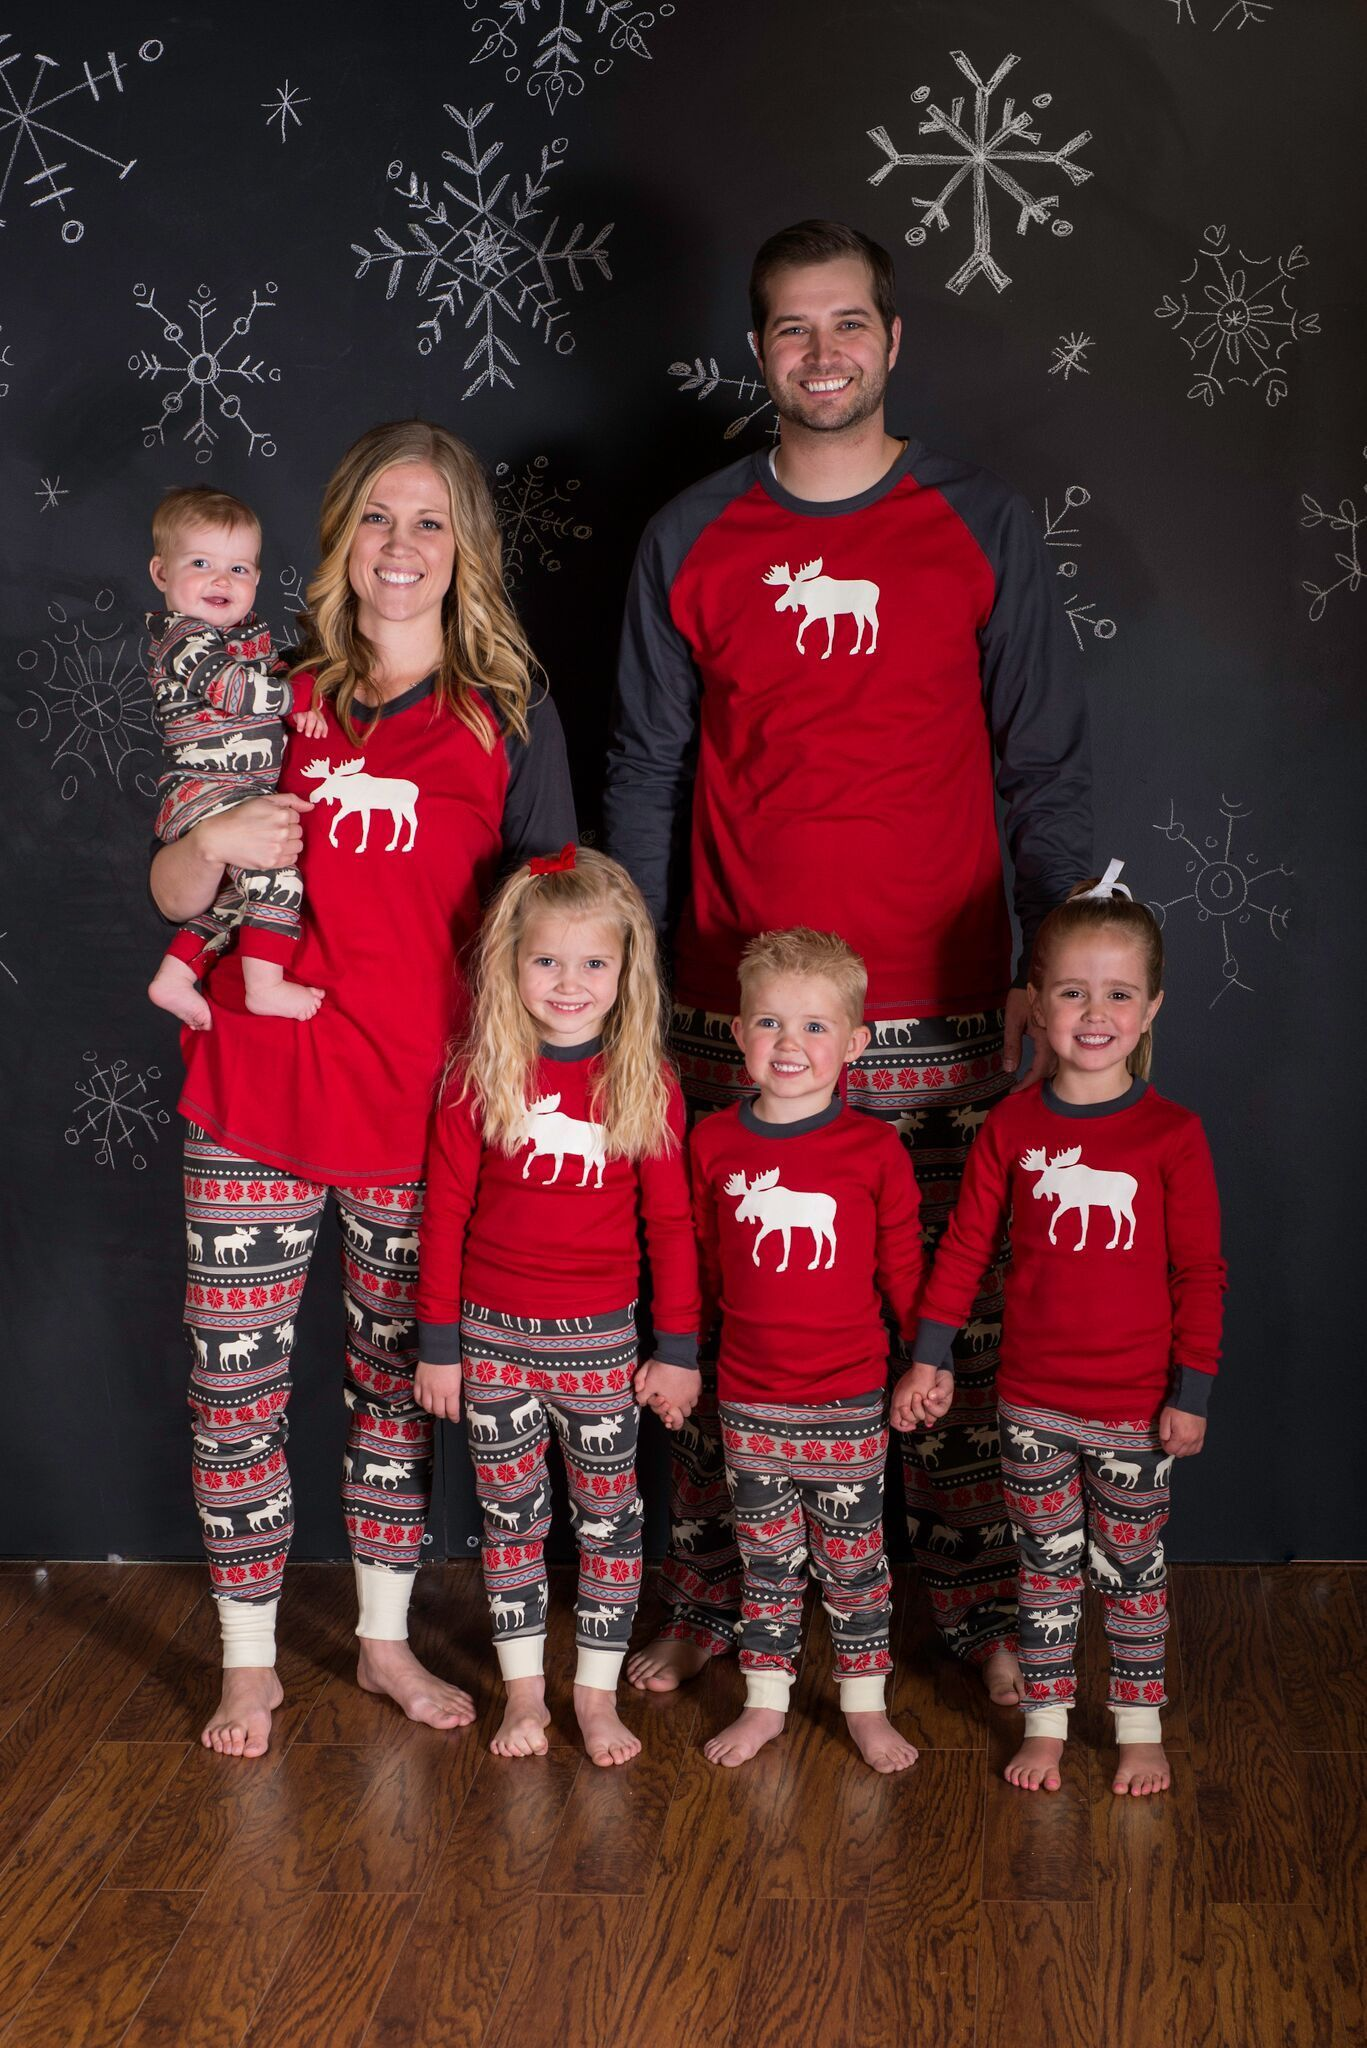 Moose Fair PJ s for the whole Family! f207a0482